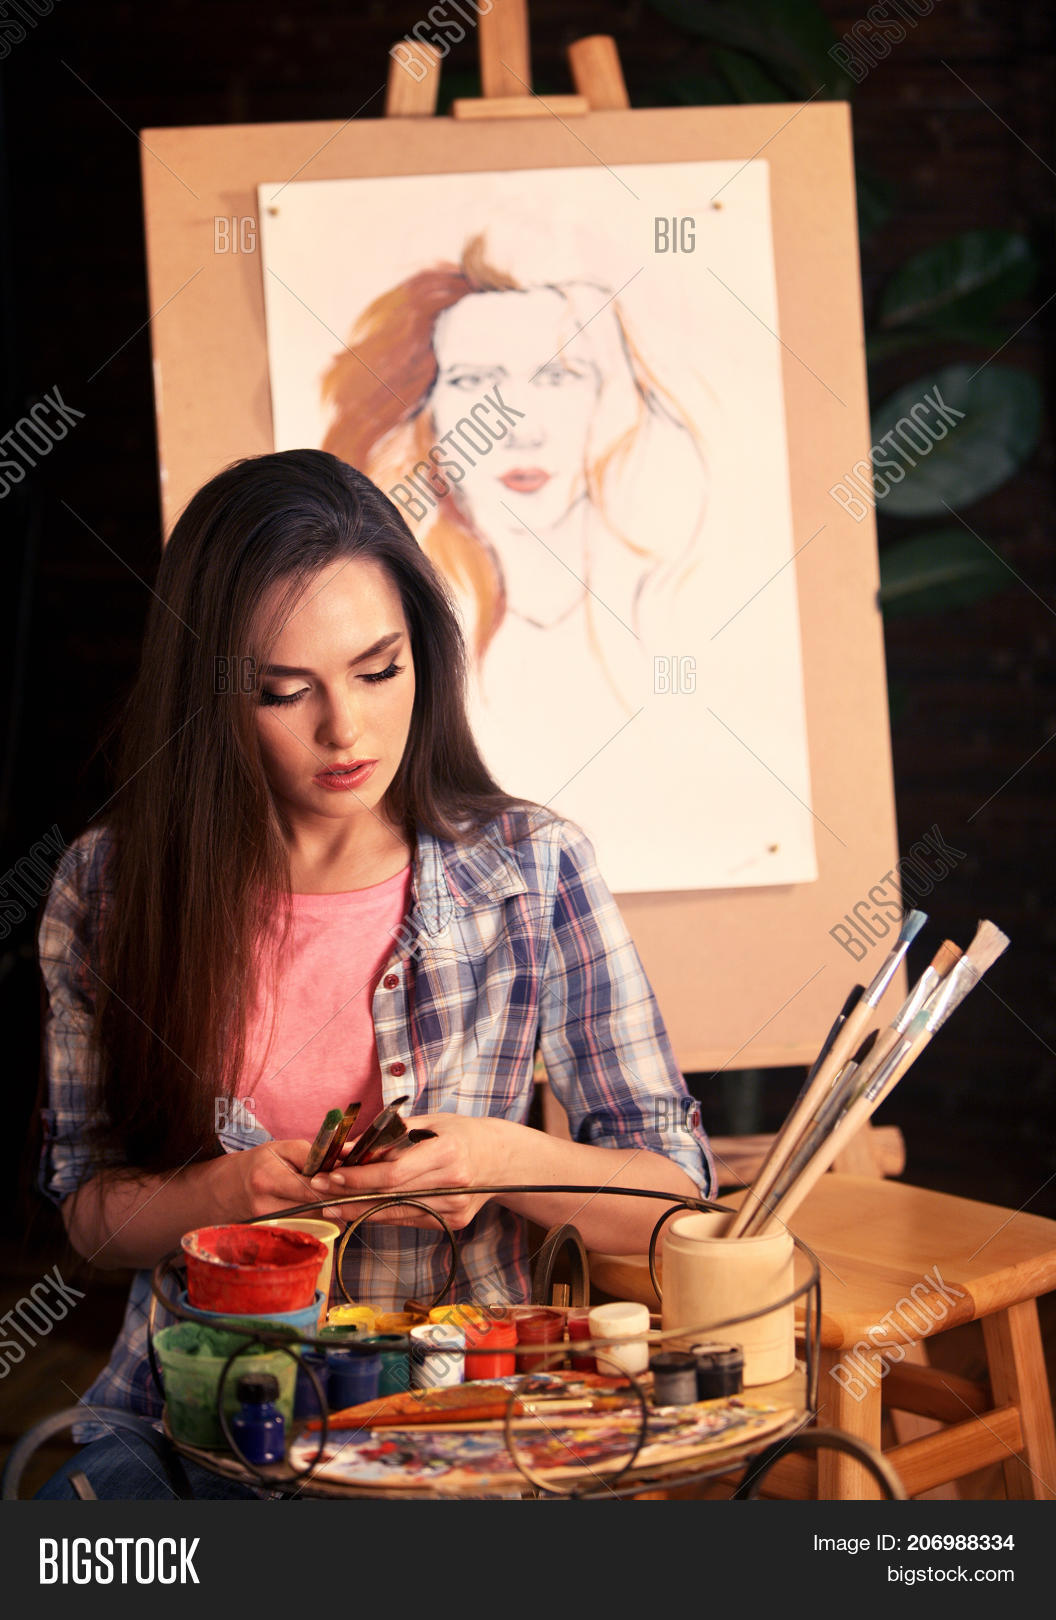 Artist Painting On Image Photo Free Trial Bigstock